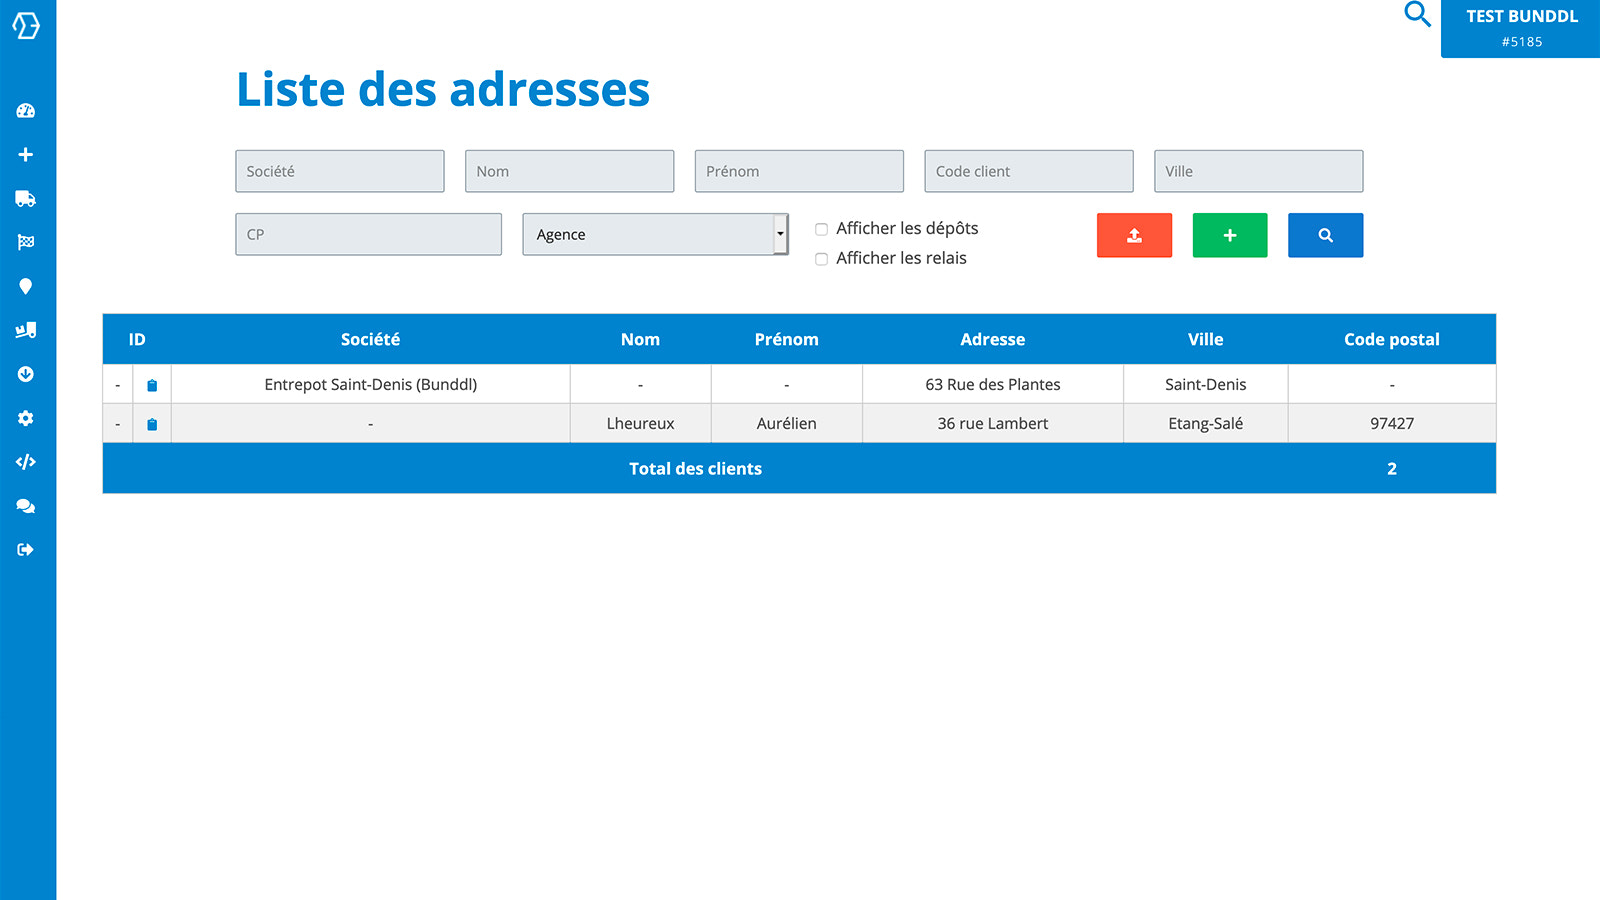 Addresses are collected by the app on your Bunddl account